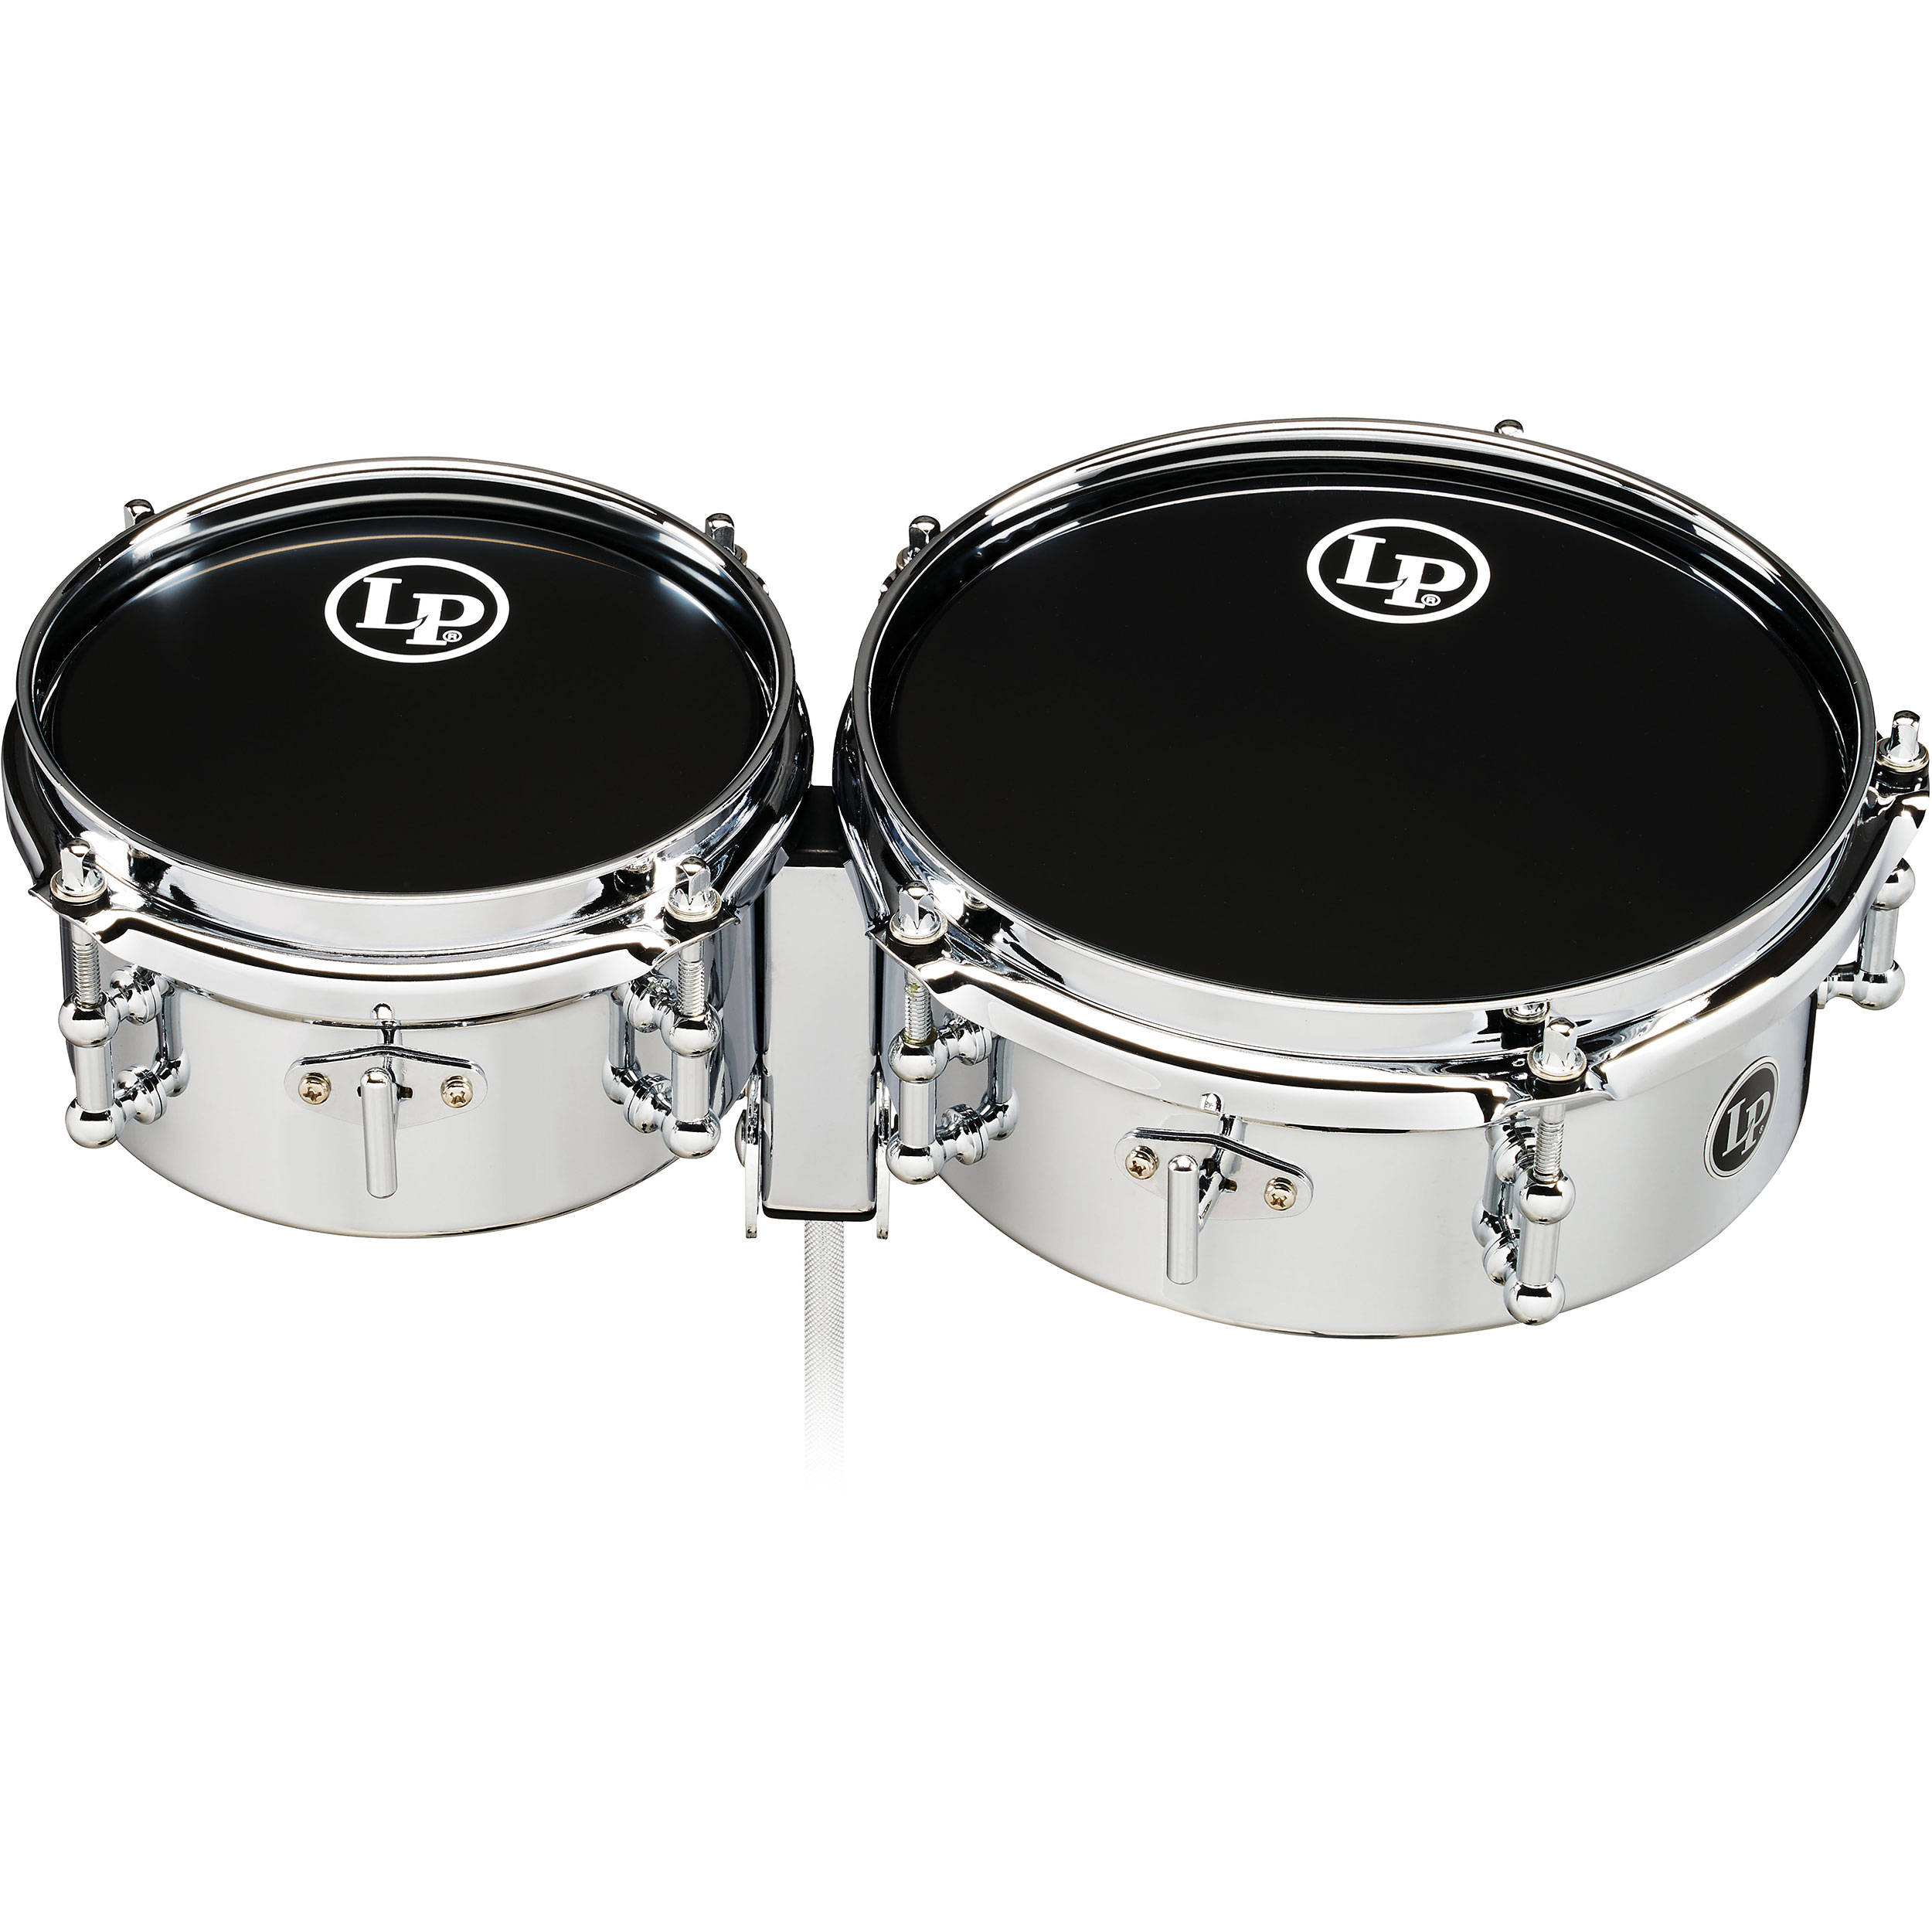 "LP 6/8"" Mini Timbales with Mount"